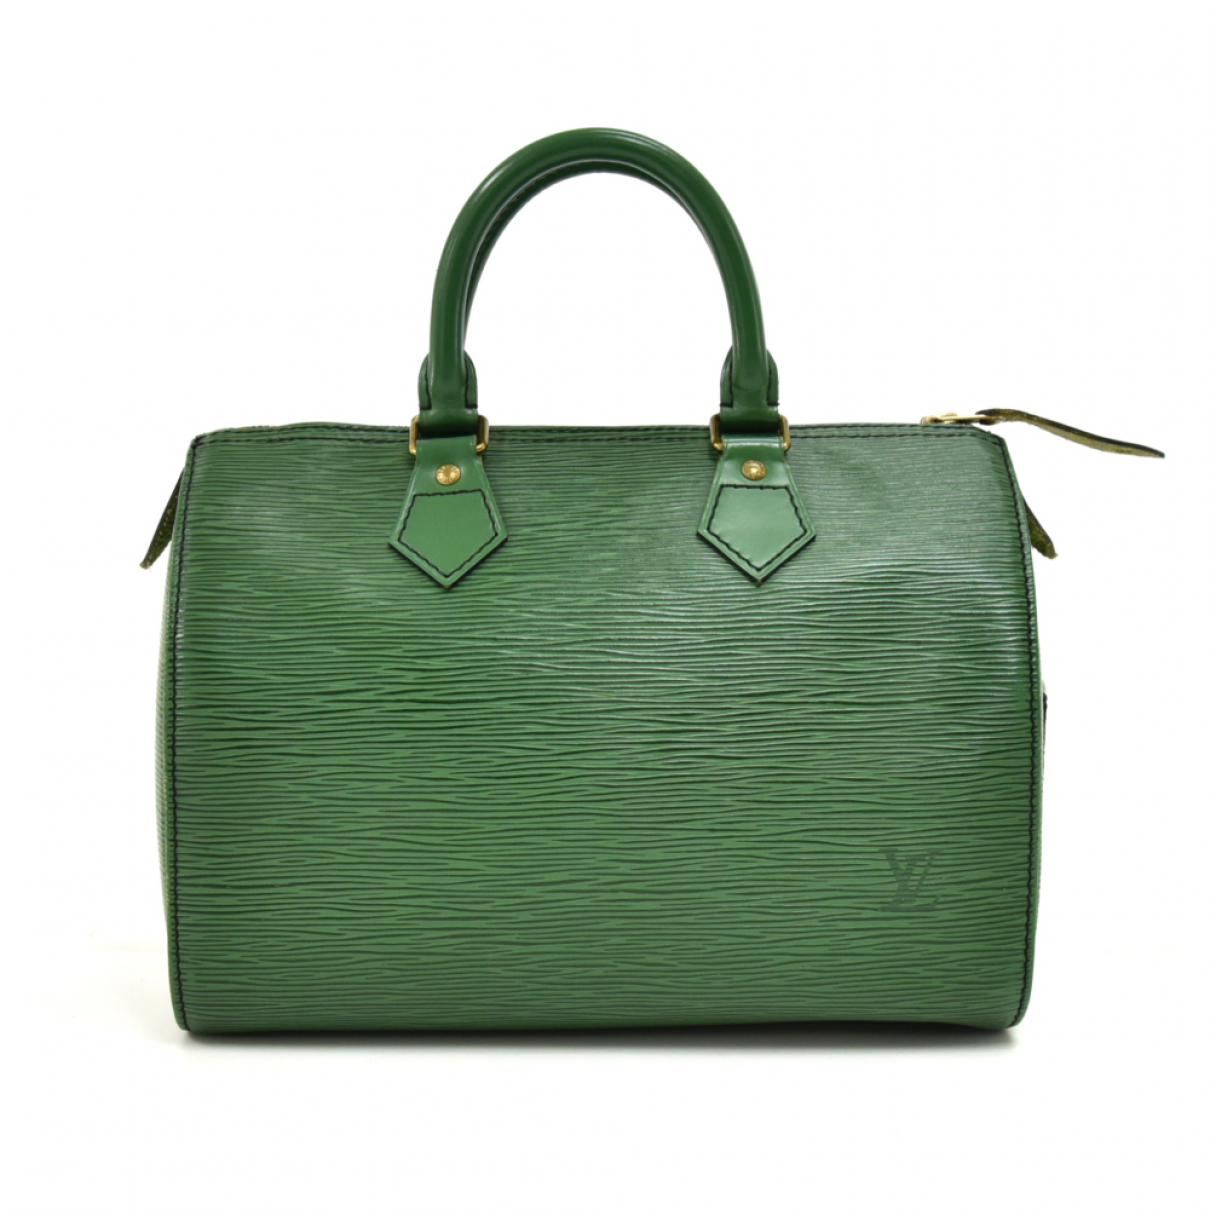 Louis Vuitton Speedy Green Leather handbag for Women N